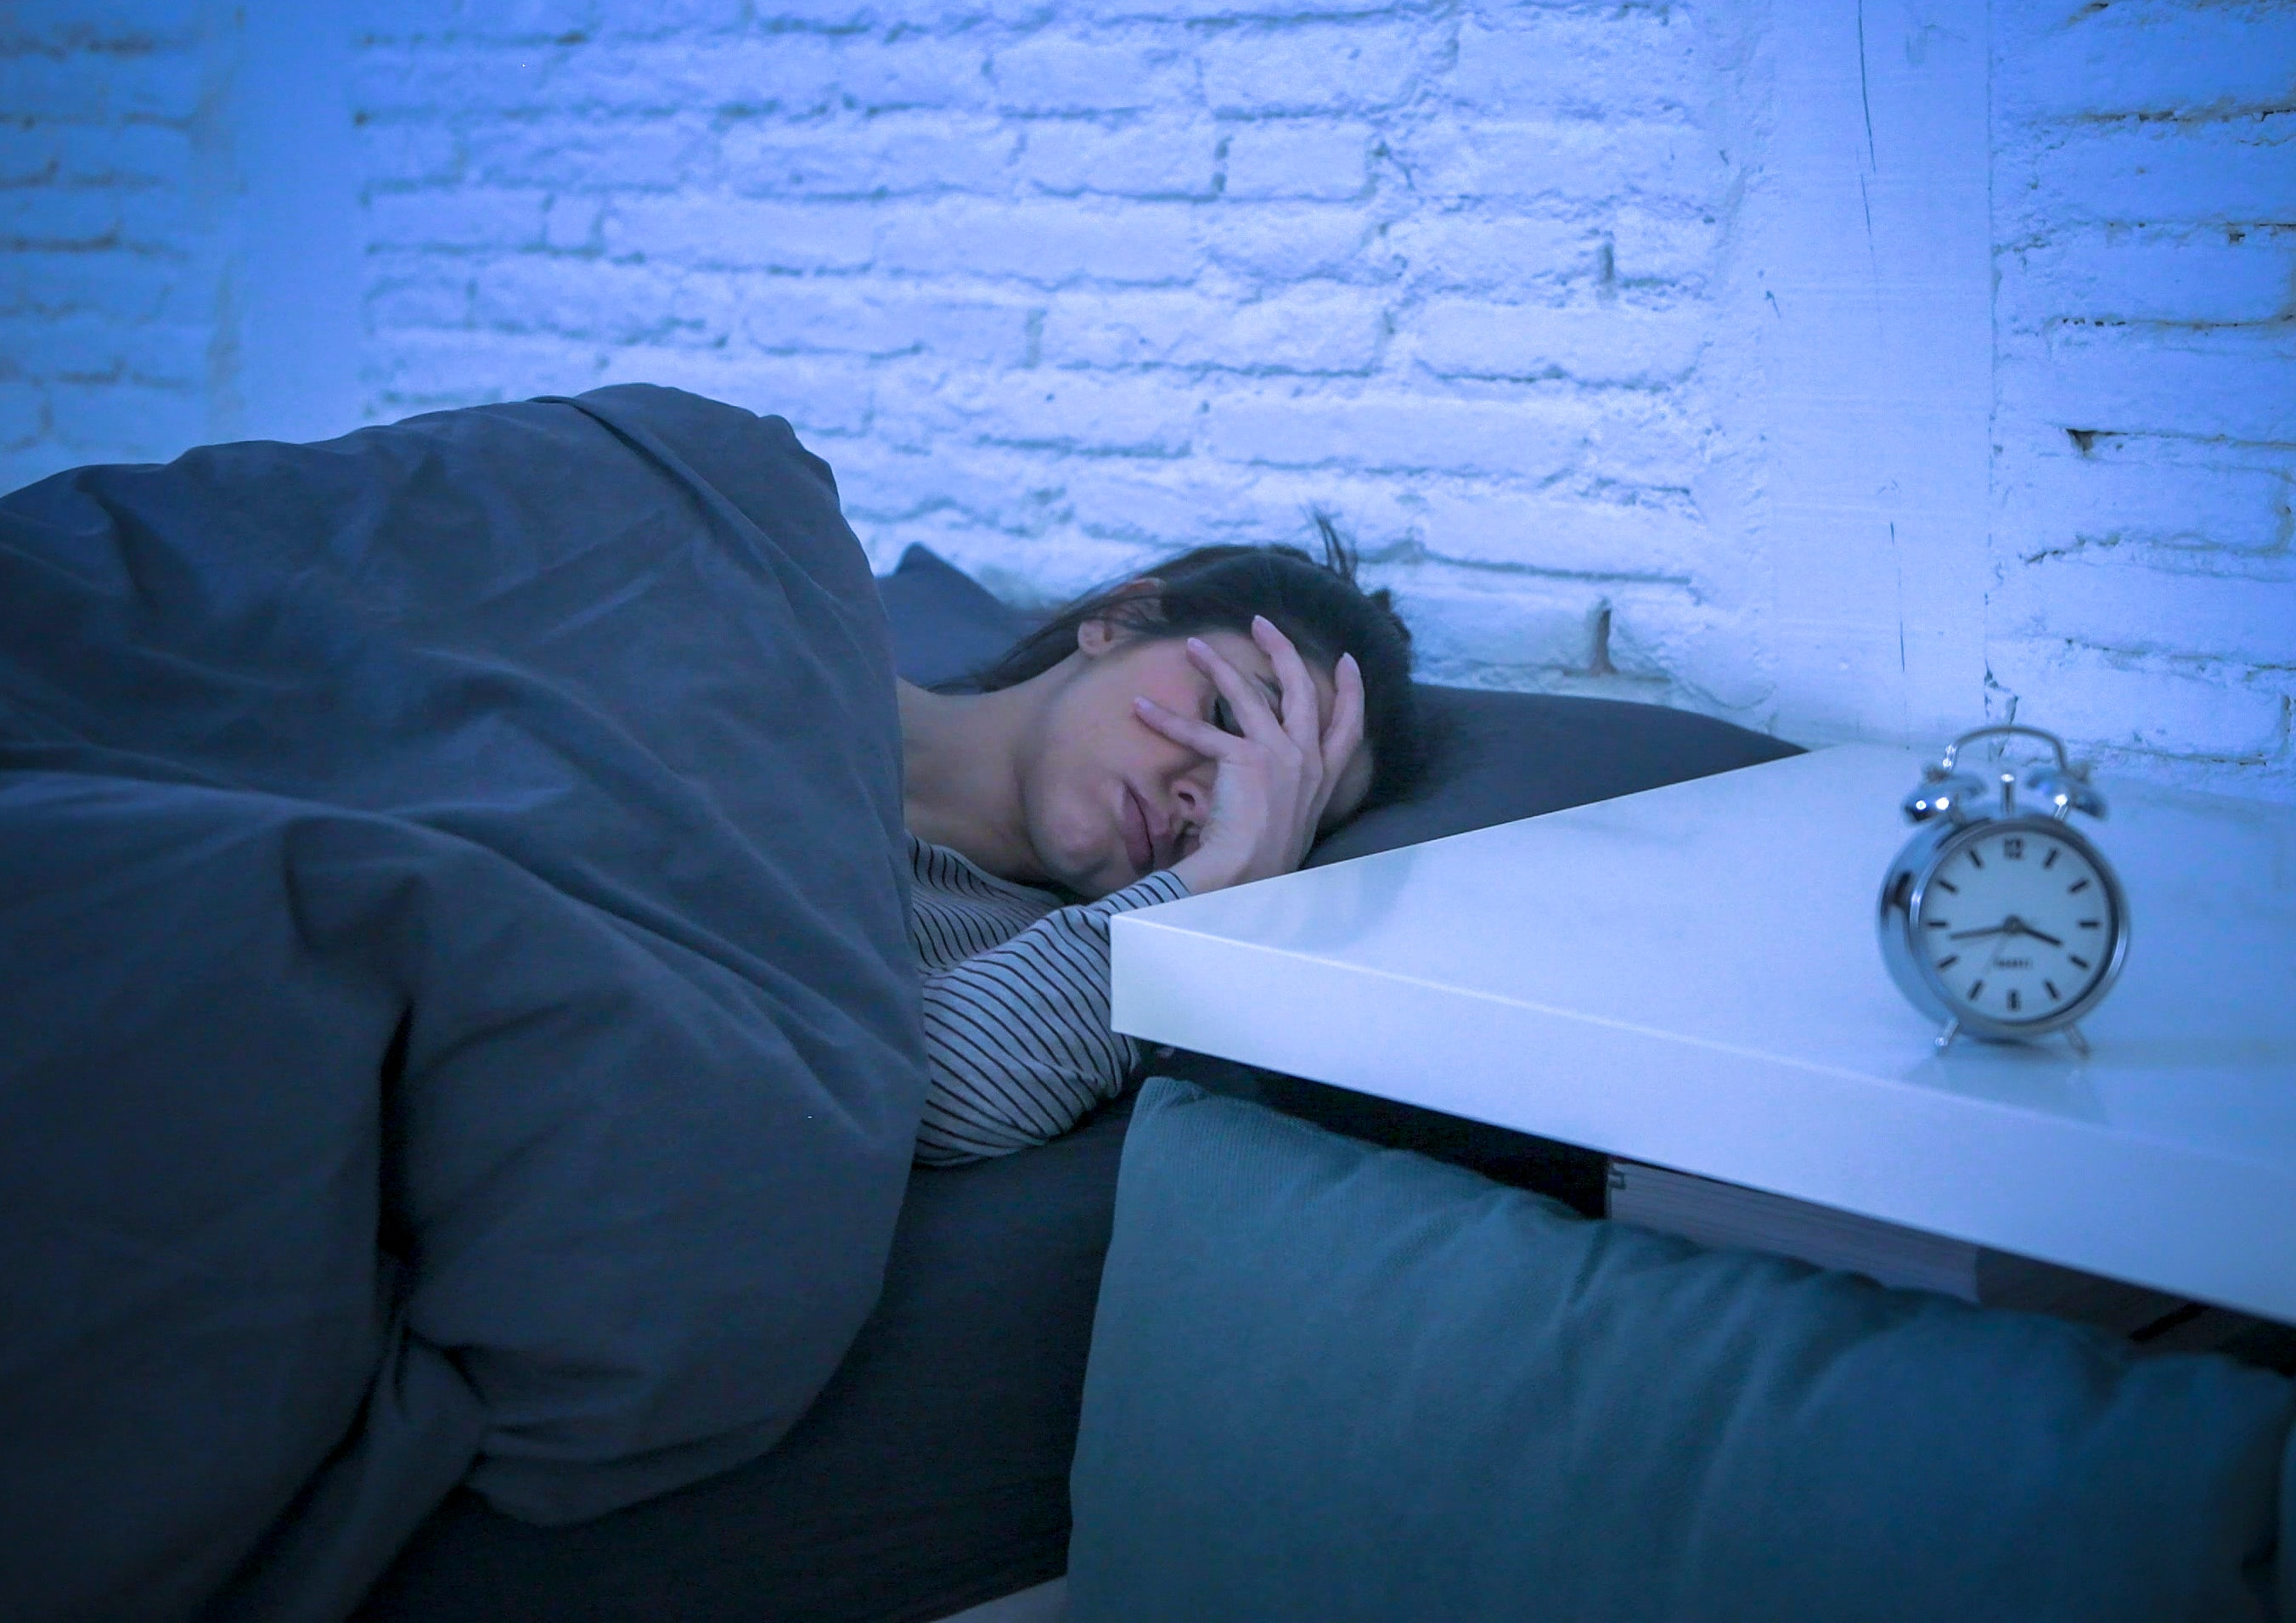 An image depicting a person suffering from waking up regularly to pee at night symptoms